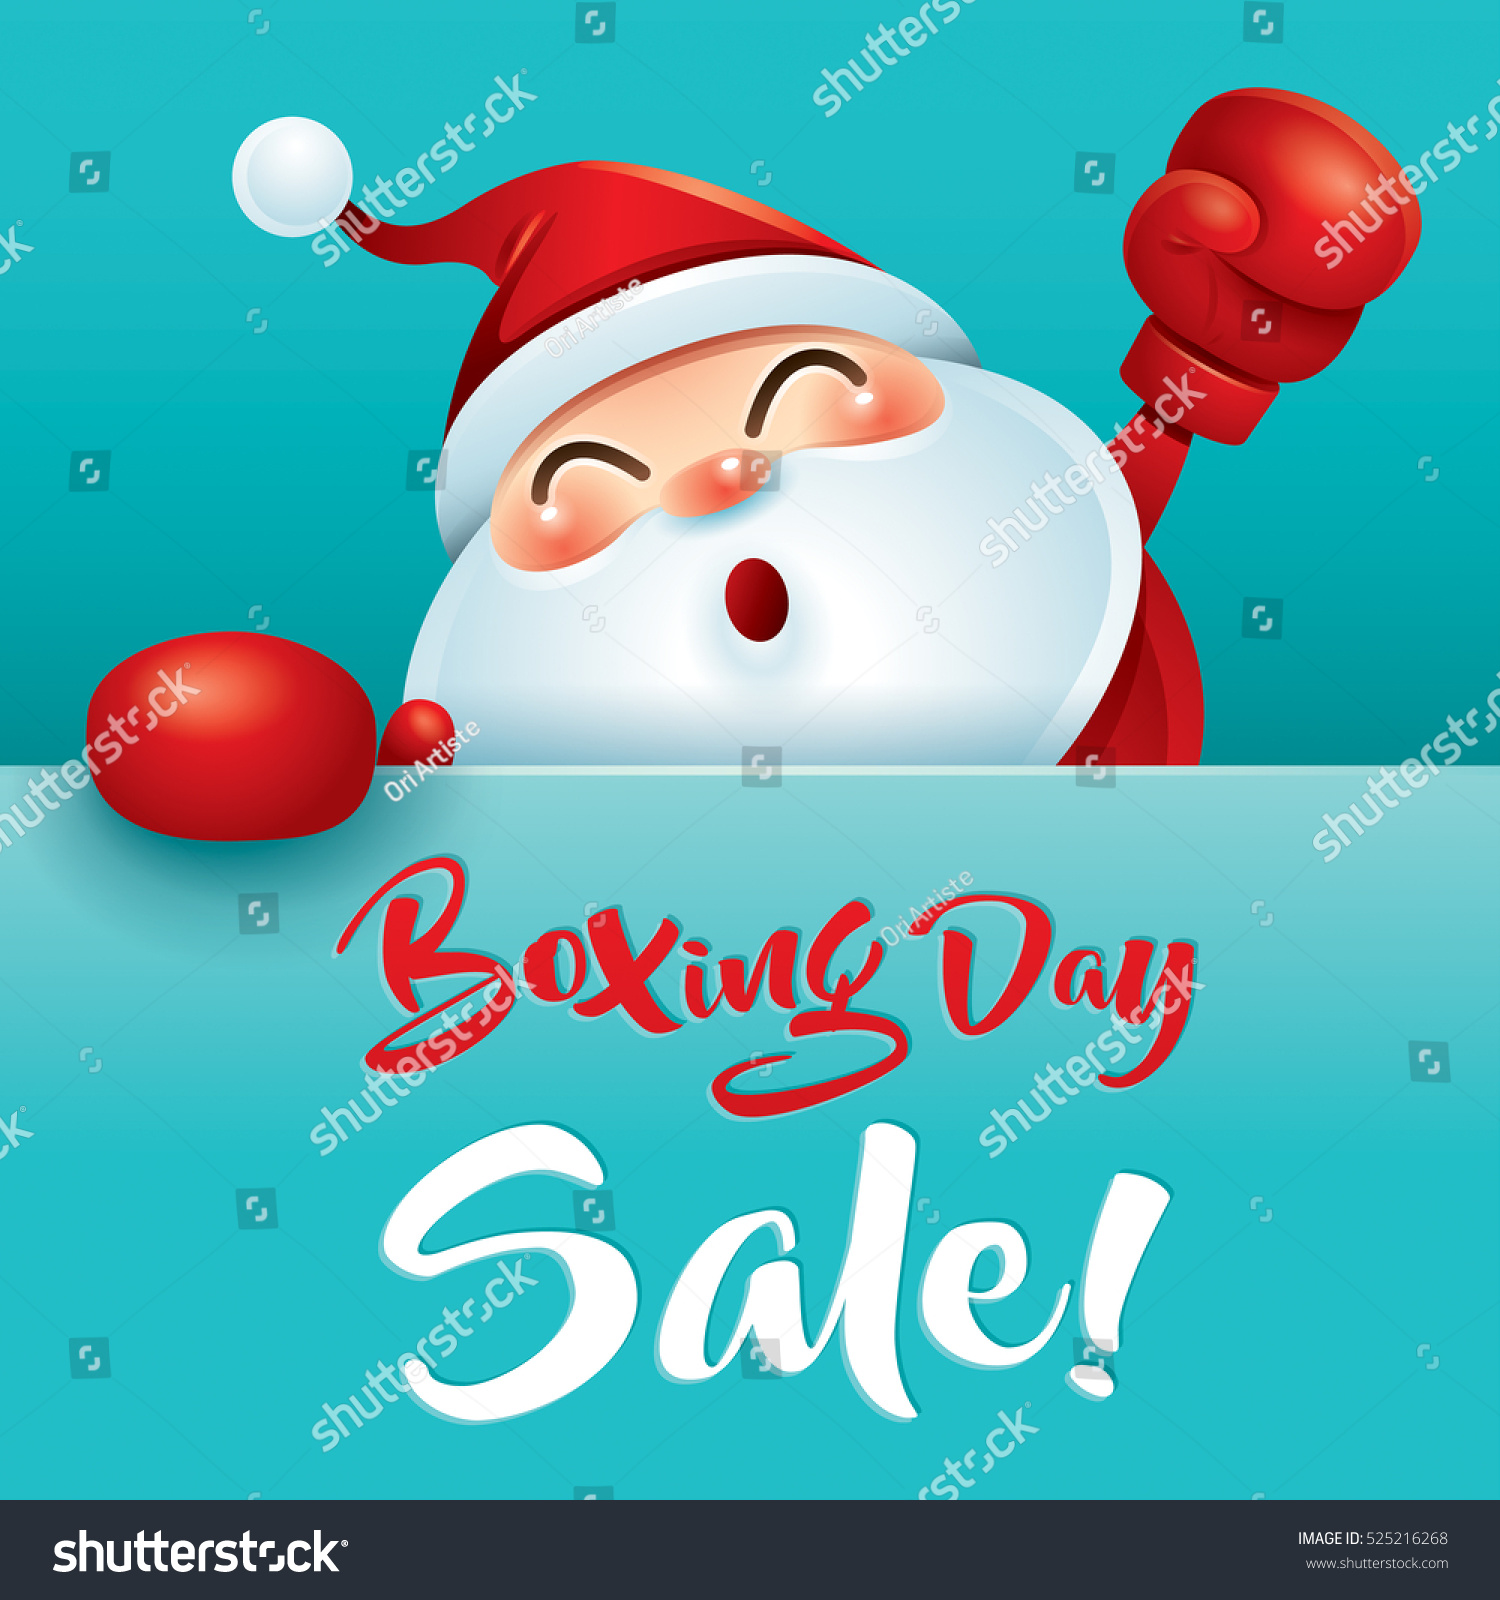 Boxing Day Sale Santa Claus Red Stock Vector 525216268 ... Boxing Day